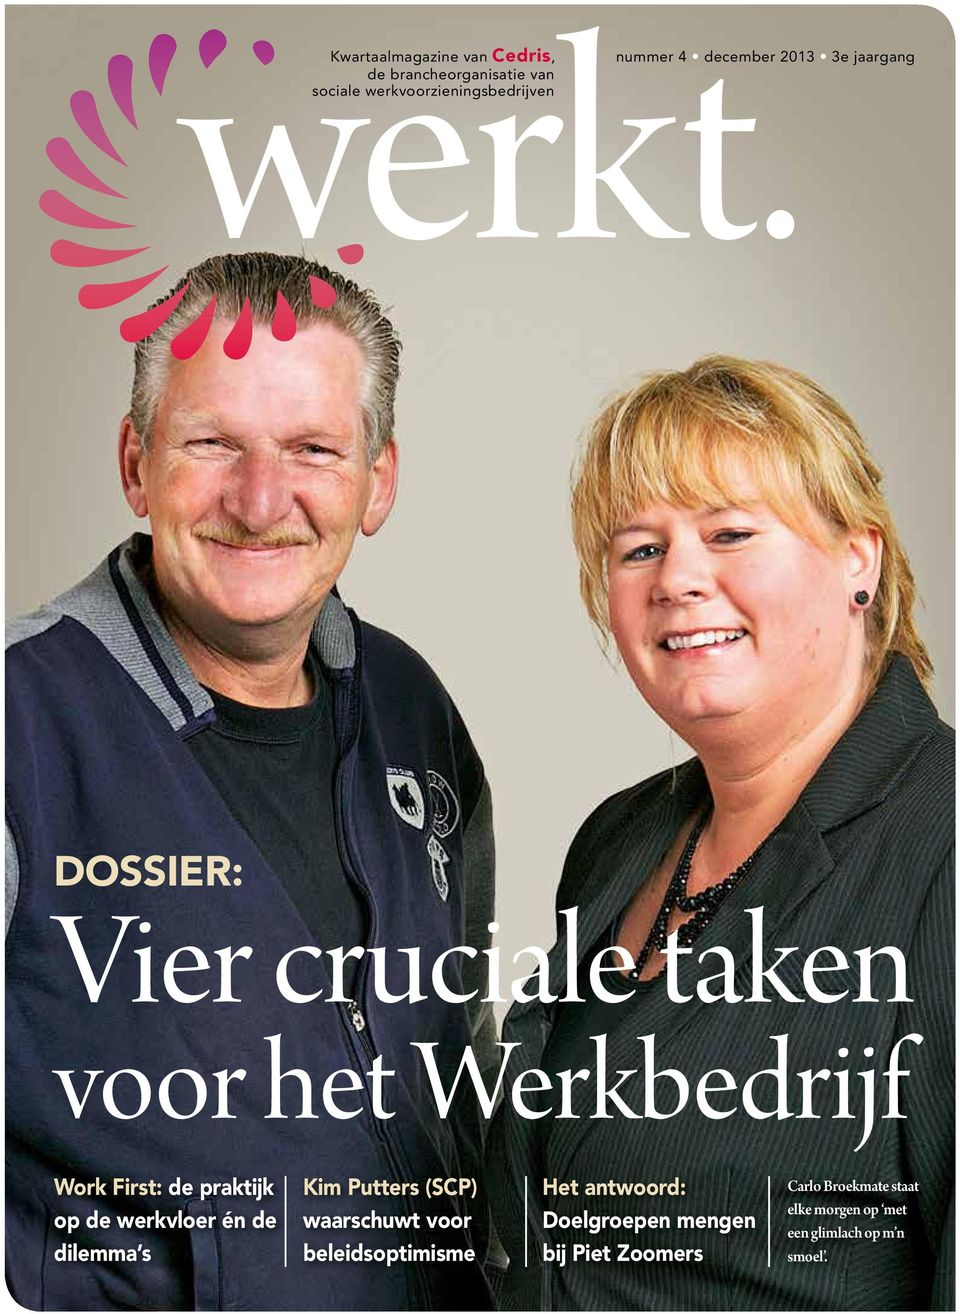 Sectoral association for sheltered employment and labour reintegration dossier: Vier cruciale taken voor het Werkbedrijf